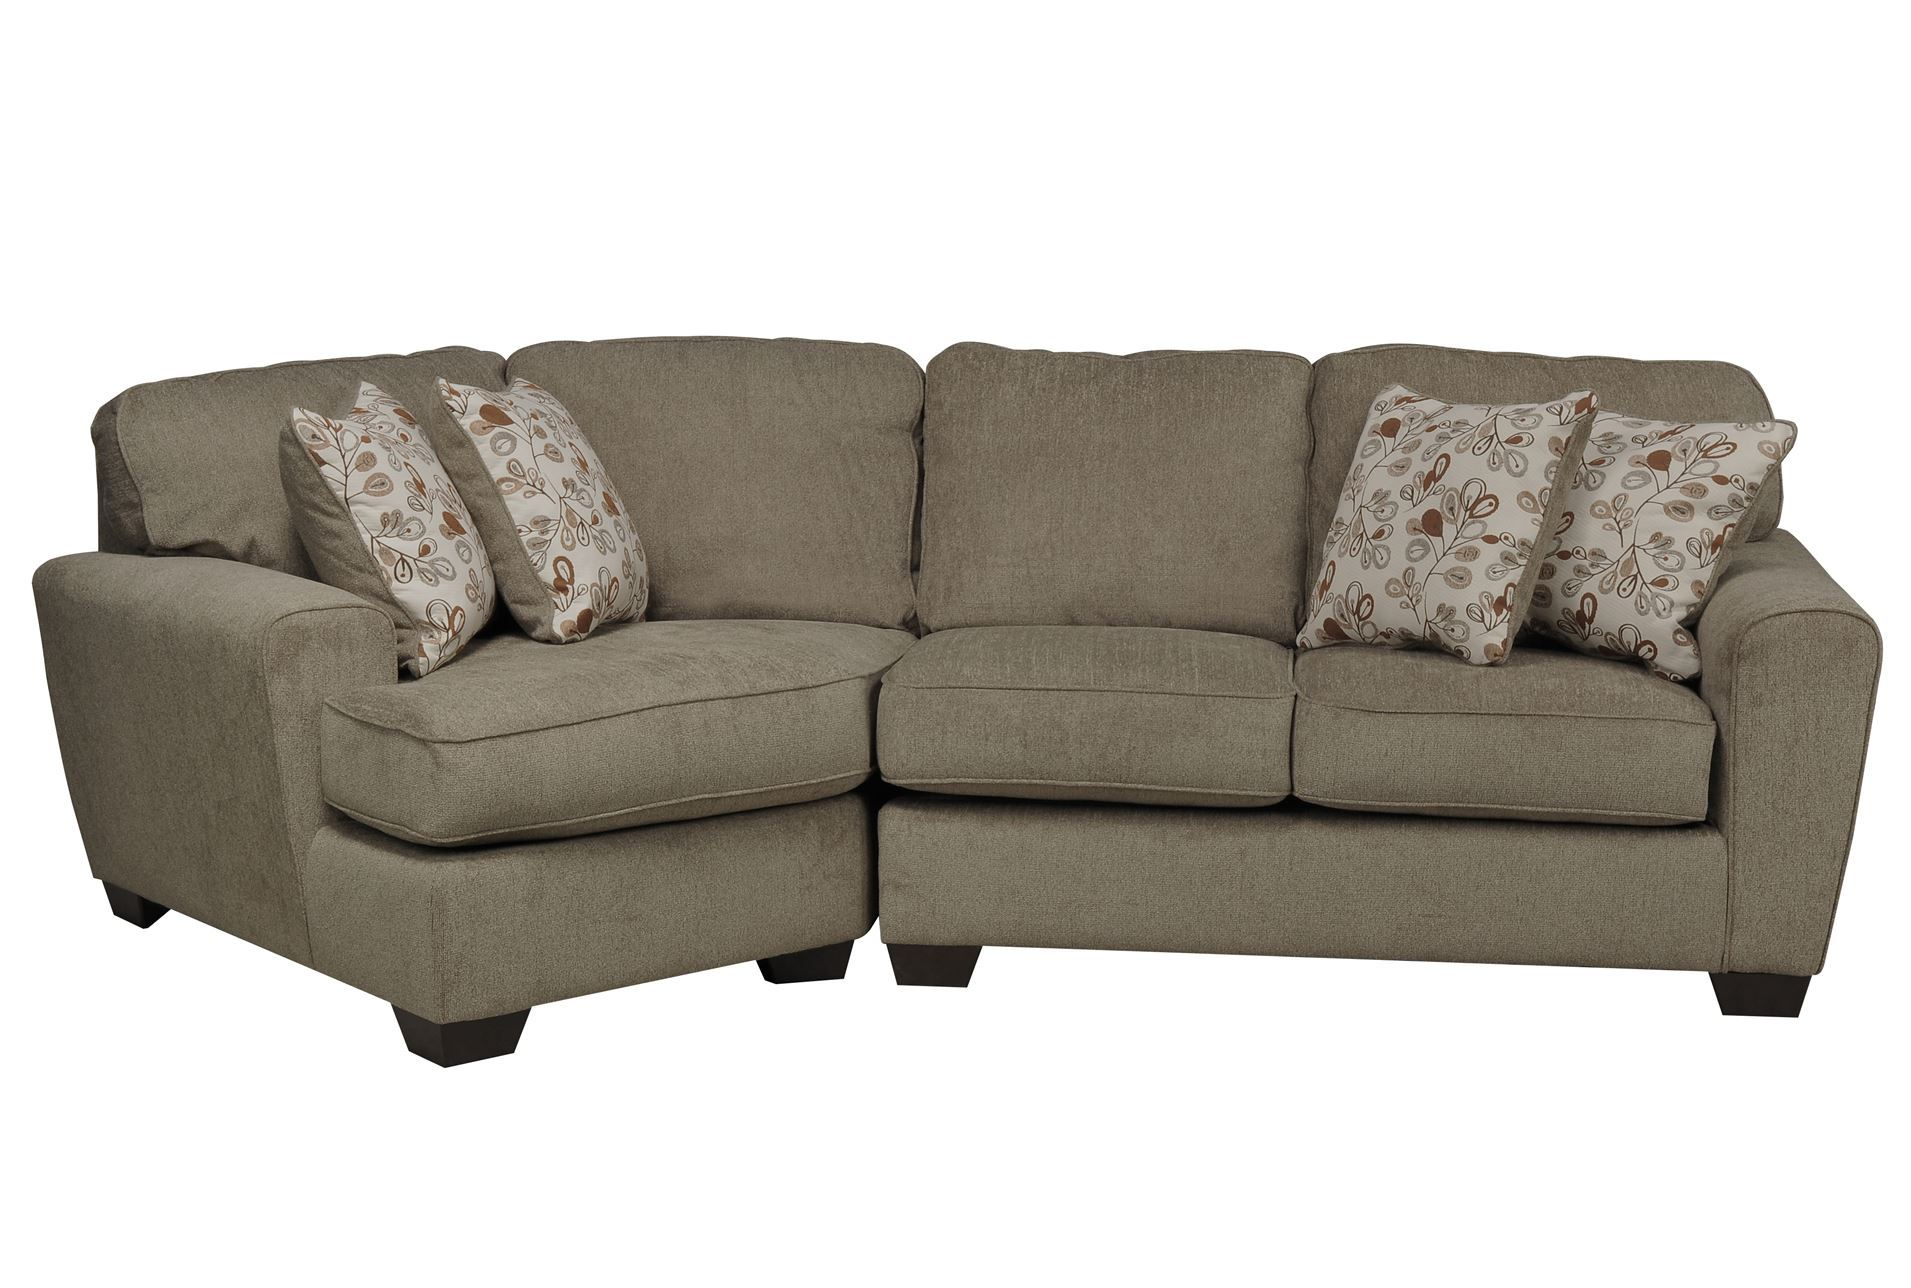 Patola Park 2 Piece Sectional W/Laf Cuddler Chaise ...